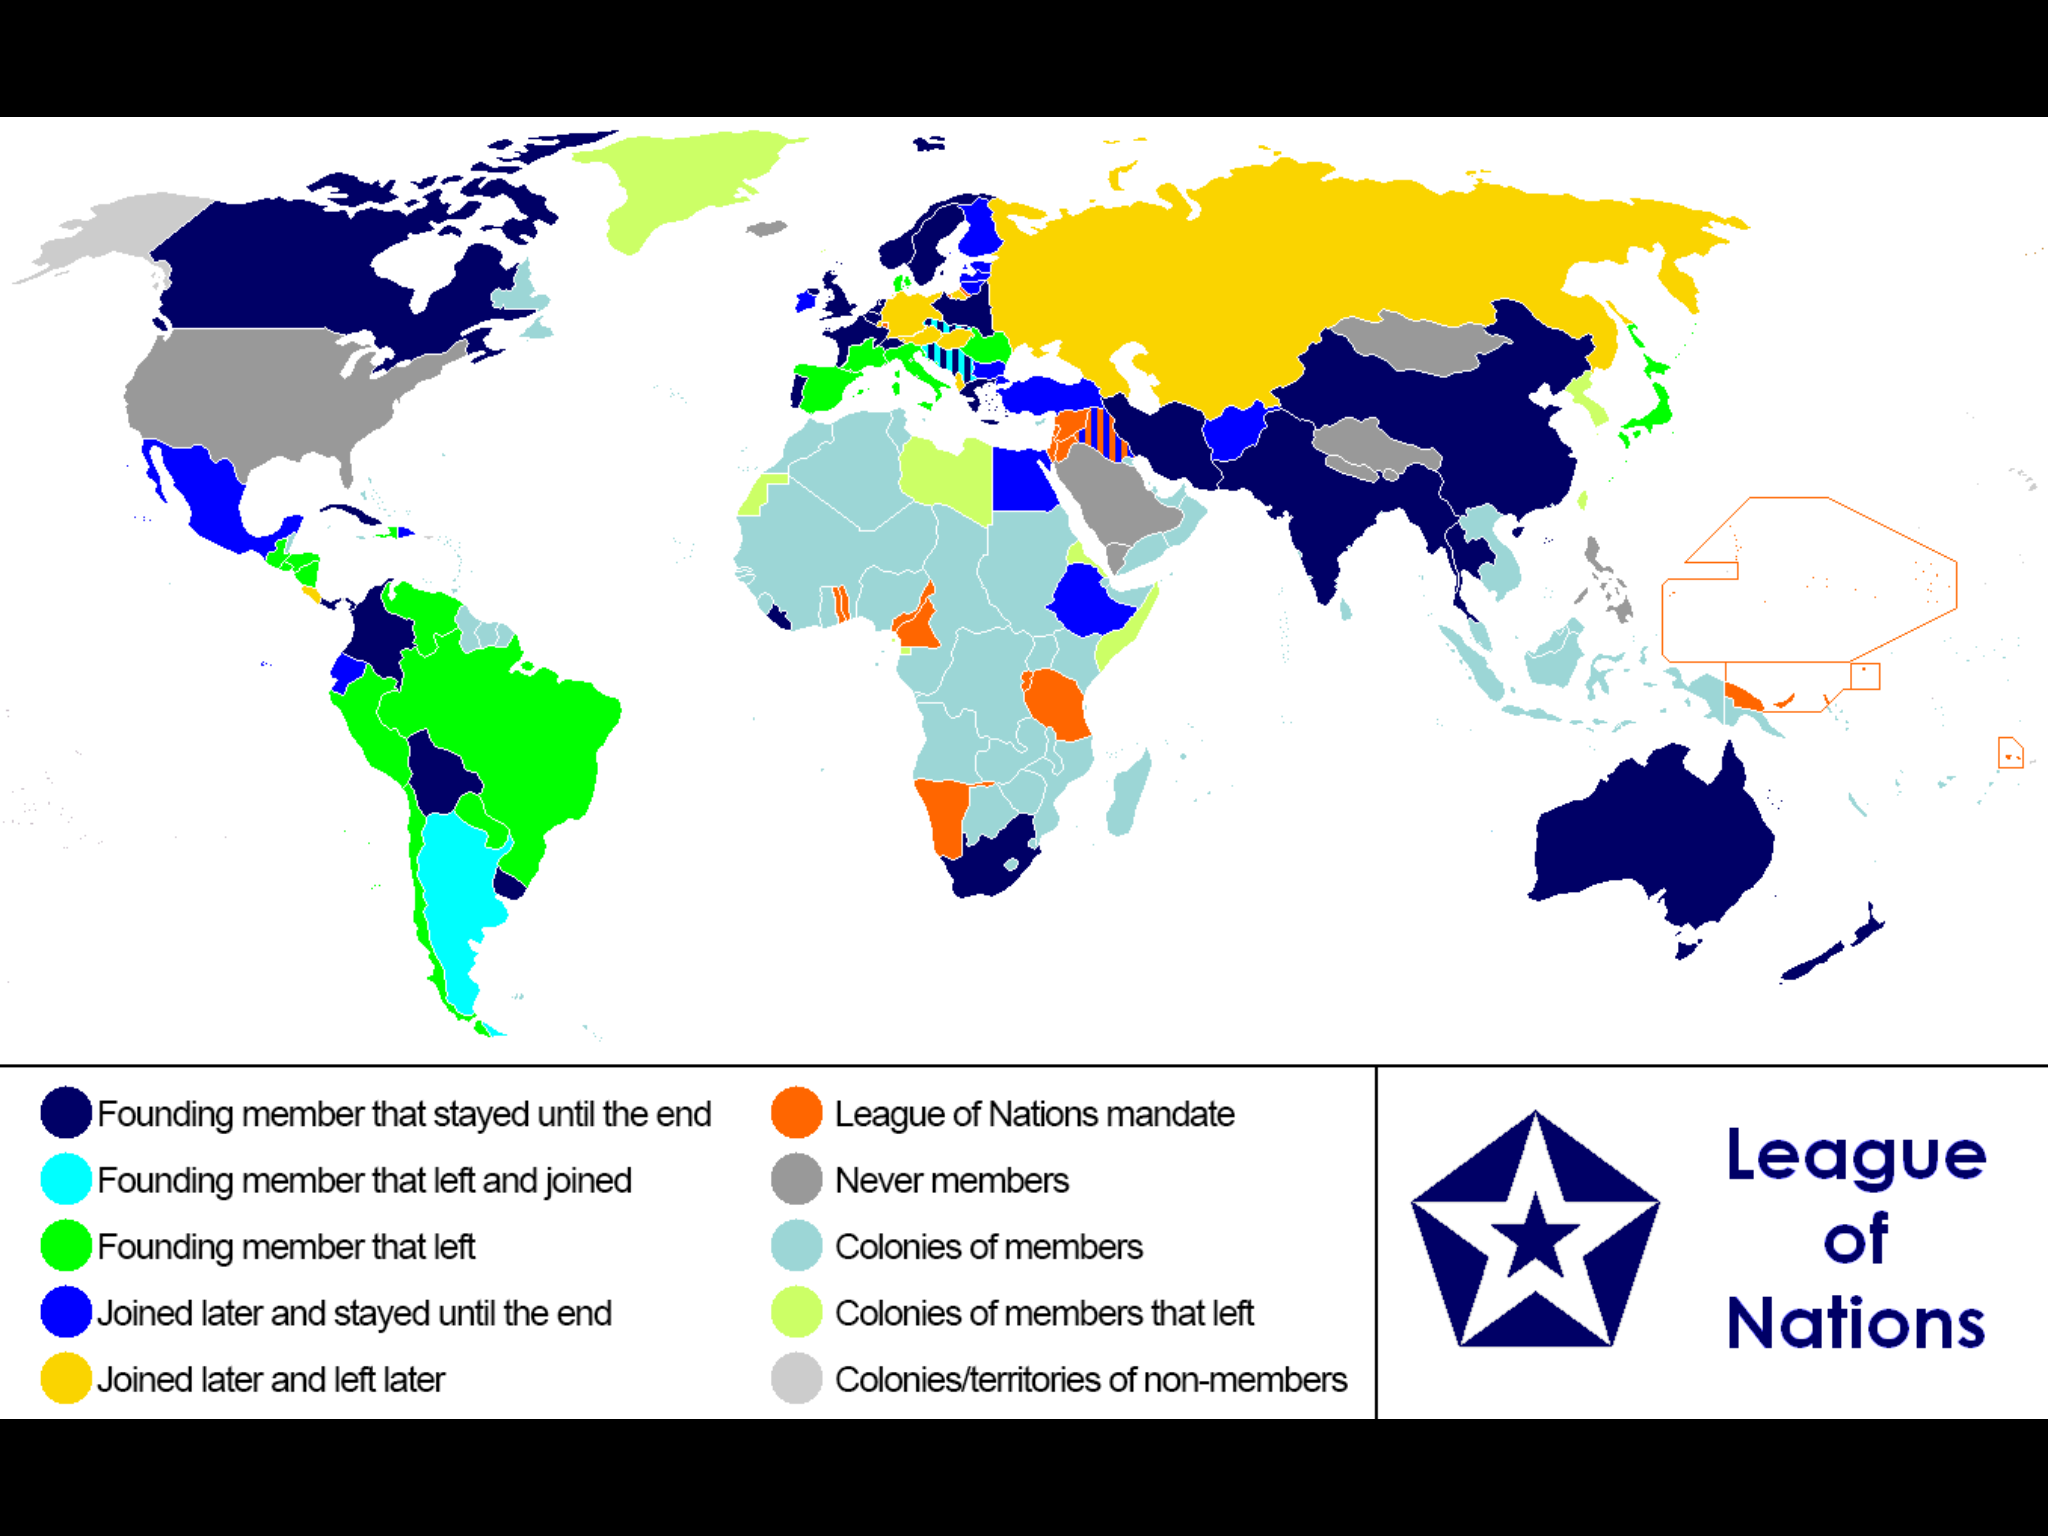 leauge of nations Despite support by president woodrow wilson, the us senate rejected the treaty of versailles and wilson's proposed league of nations, which aimed to create stability in post wwi europe.